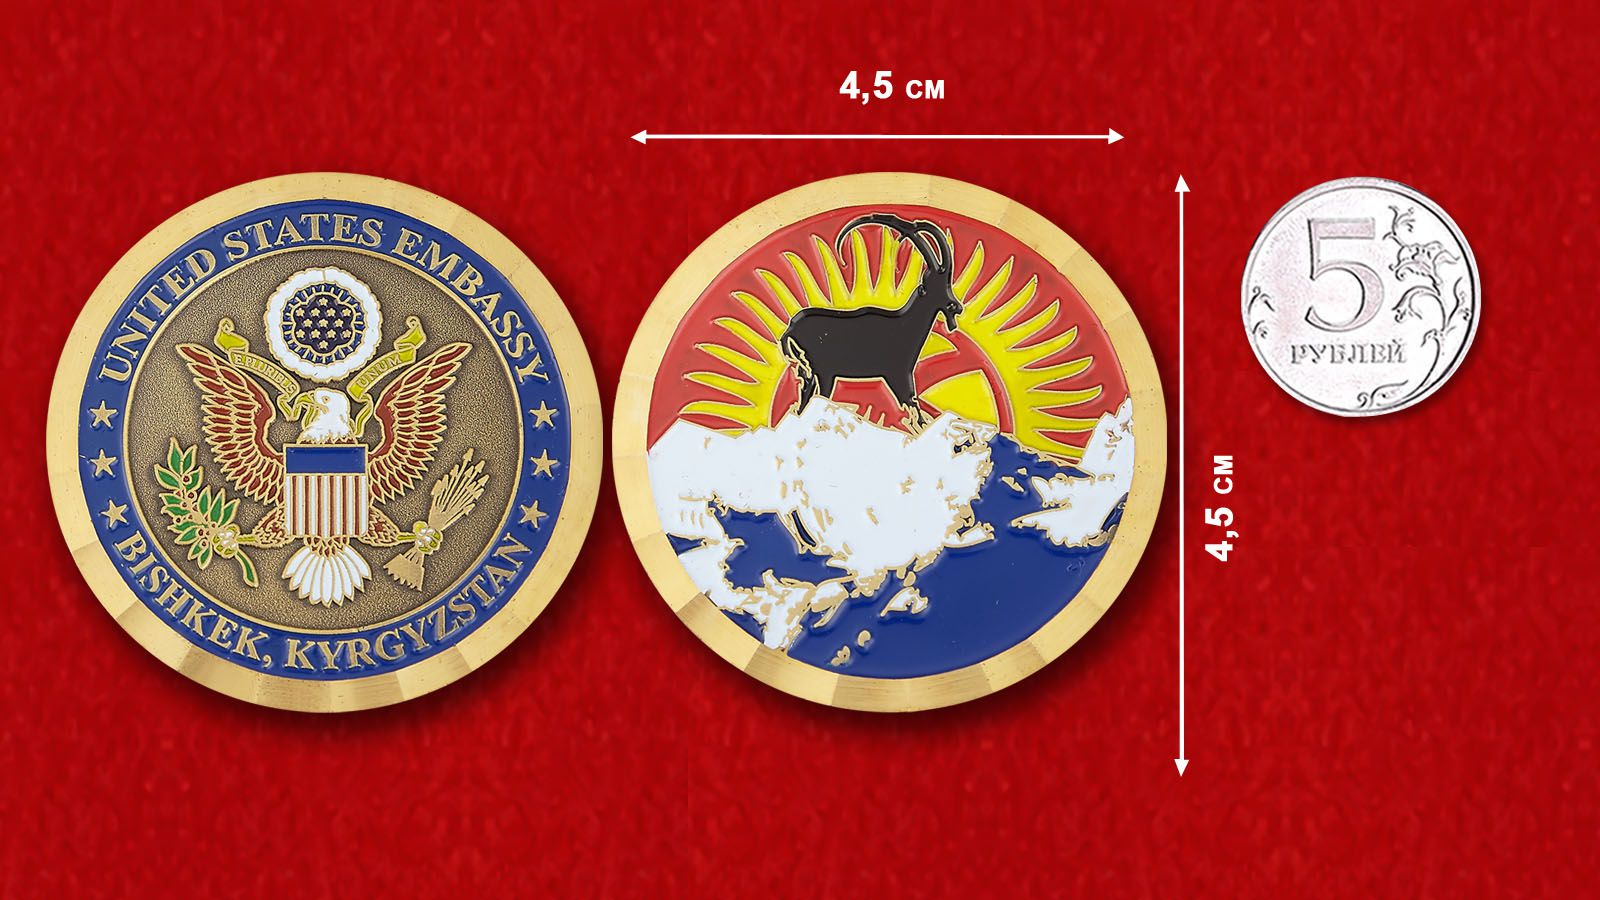 The US Embassy in Bishkek Challenge Coin - comparative size